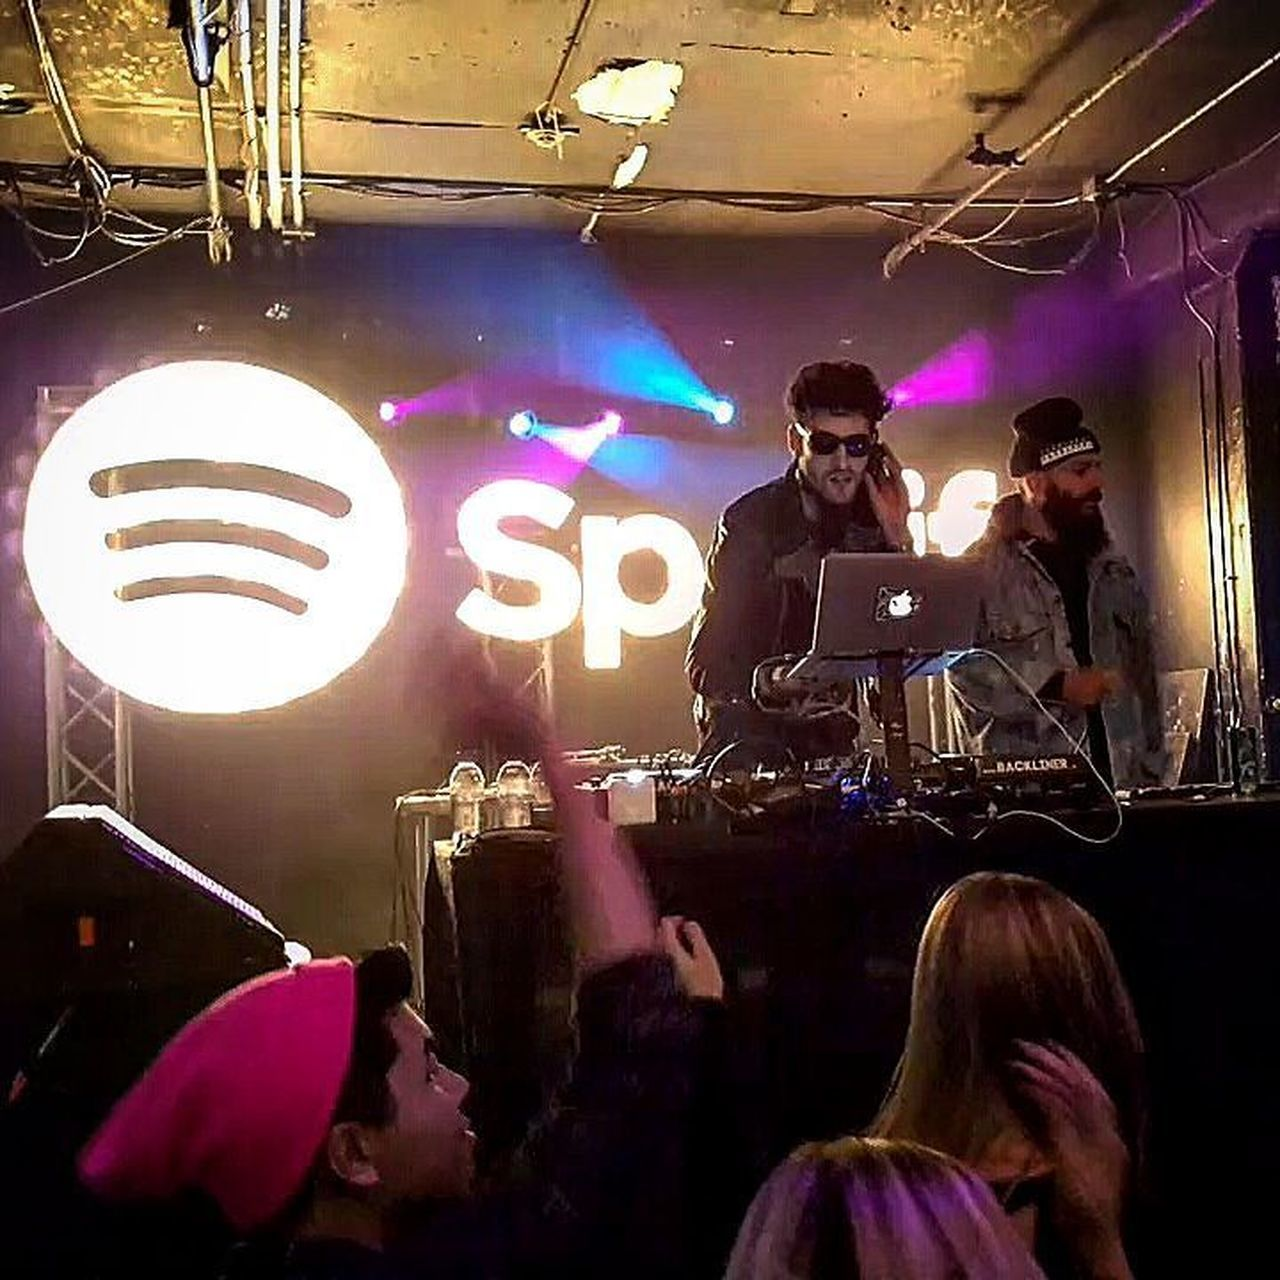 Spinning electro-funky vibes at Spotify Canada's 2nd 🎂 Day, 🇨🇦 boys Chromeo live last night at The Hoxton, Toronto. Nightlife Music Audience Popular Music Concert Indoors  Arts Culture And Entertainment Stage - Performance Space Dj Night Nightclub Crowd Spotify Spotifycanada Spotifyturns2 Chromeo Canada Rave Hoxton